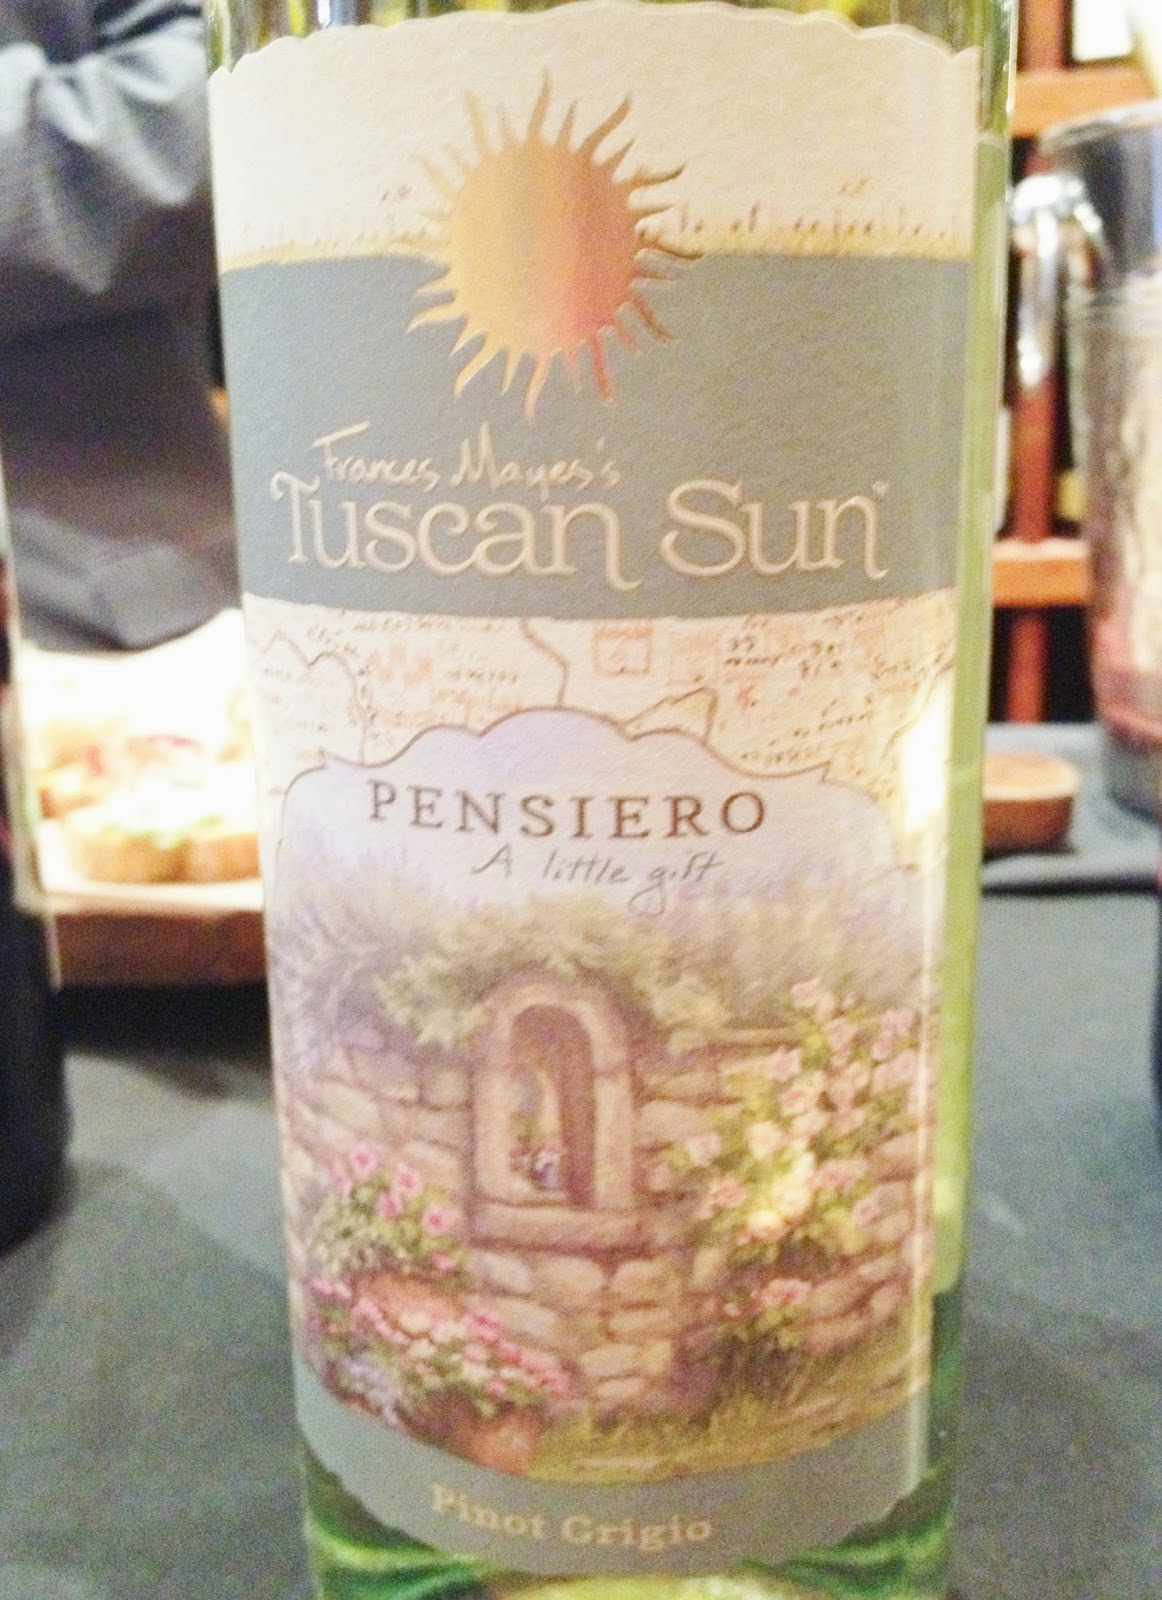 Pensiero Frances Mayes Tuscan Sun wines